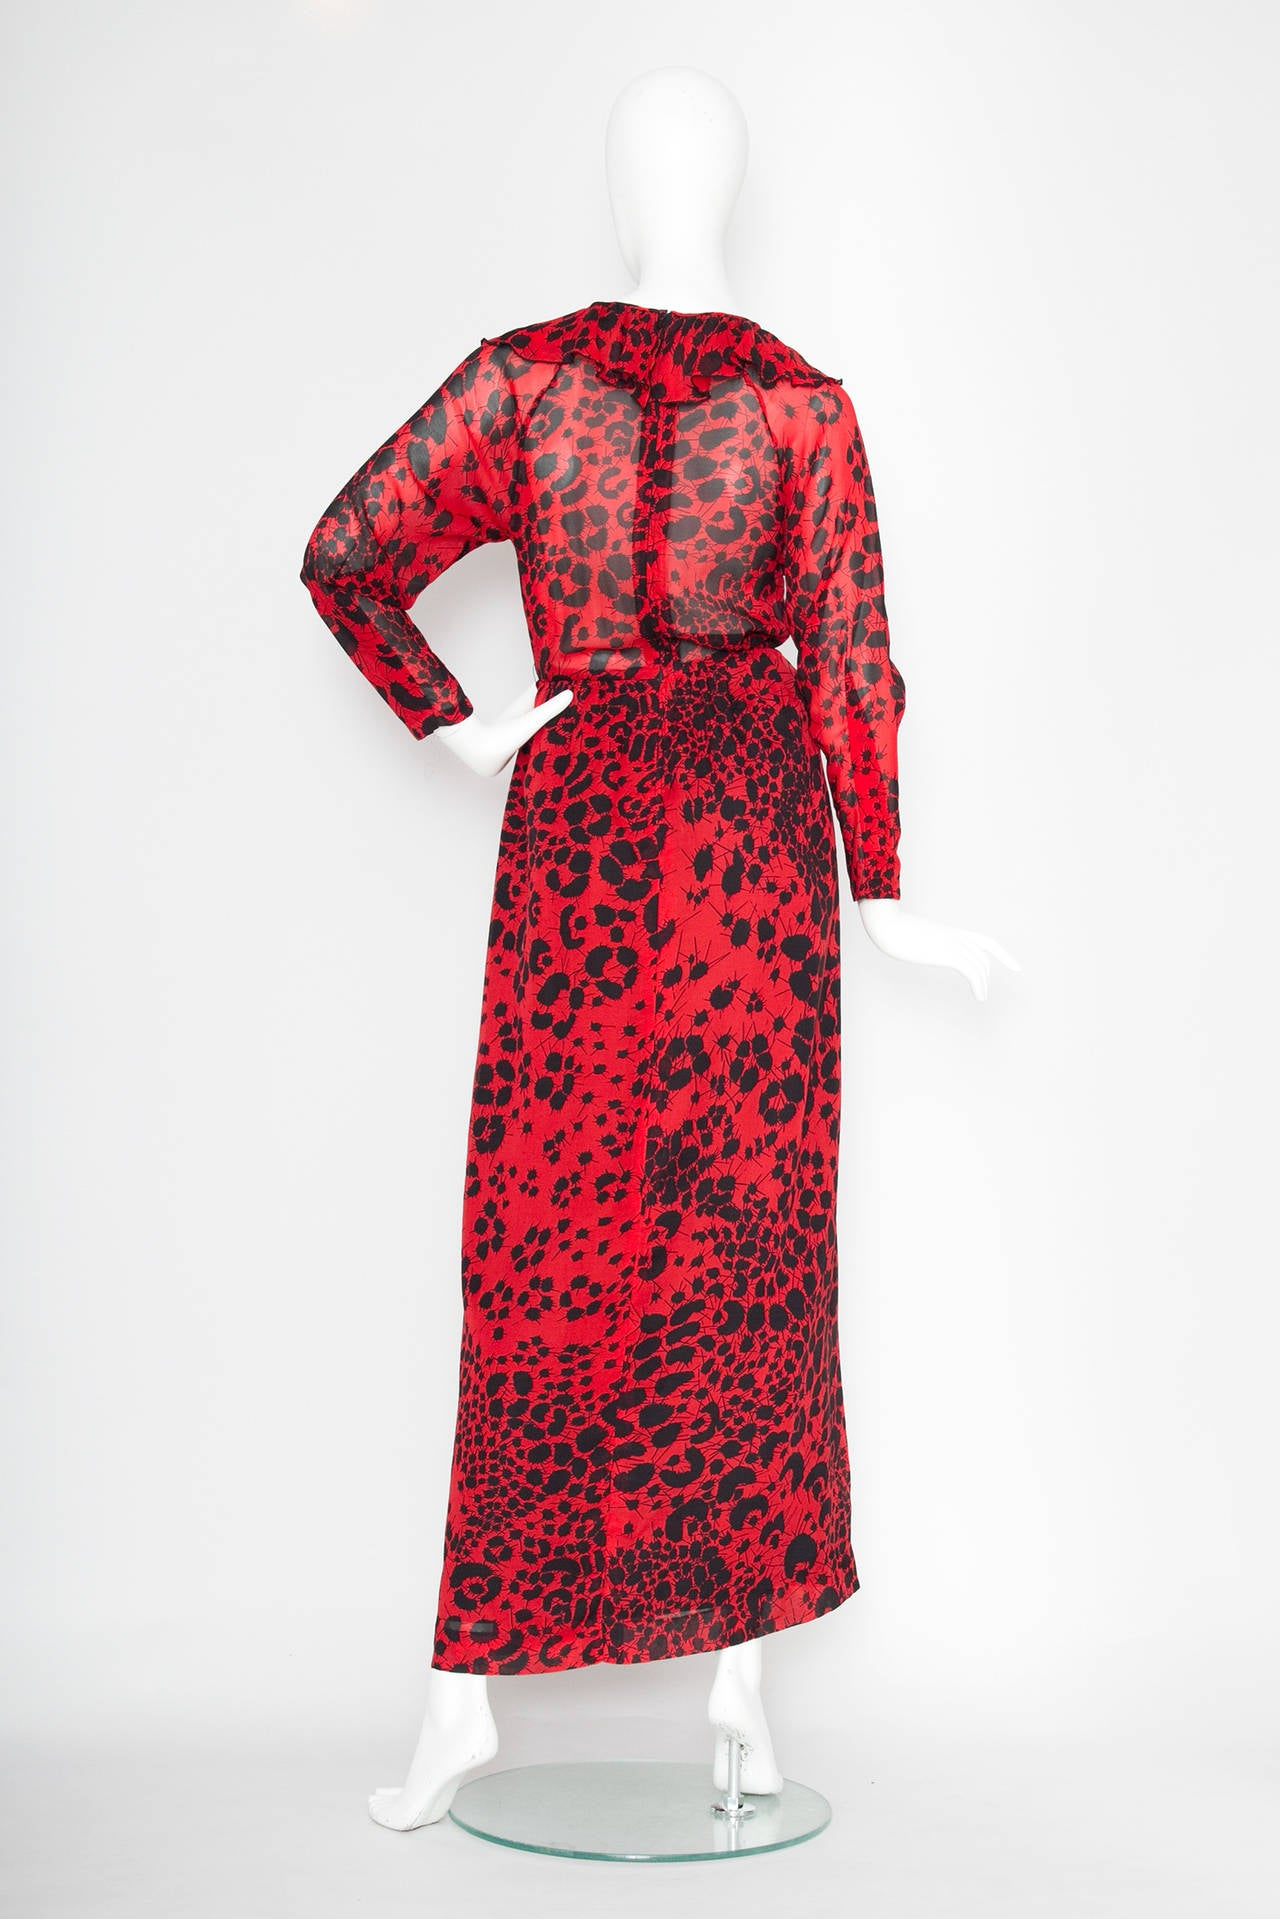 Women's Dramatic 1970s Lanvin Red Silk Dress For Sale